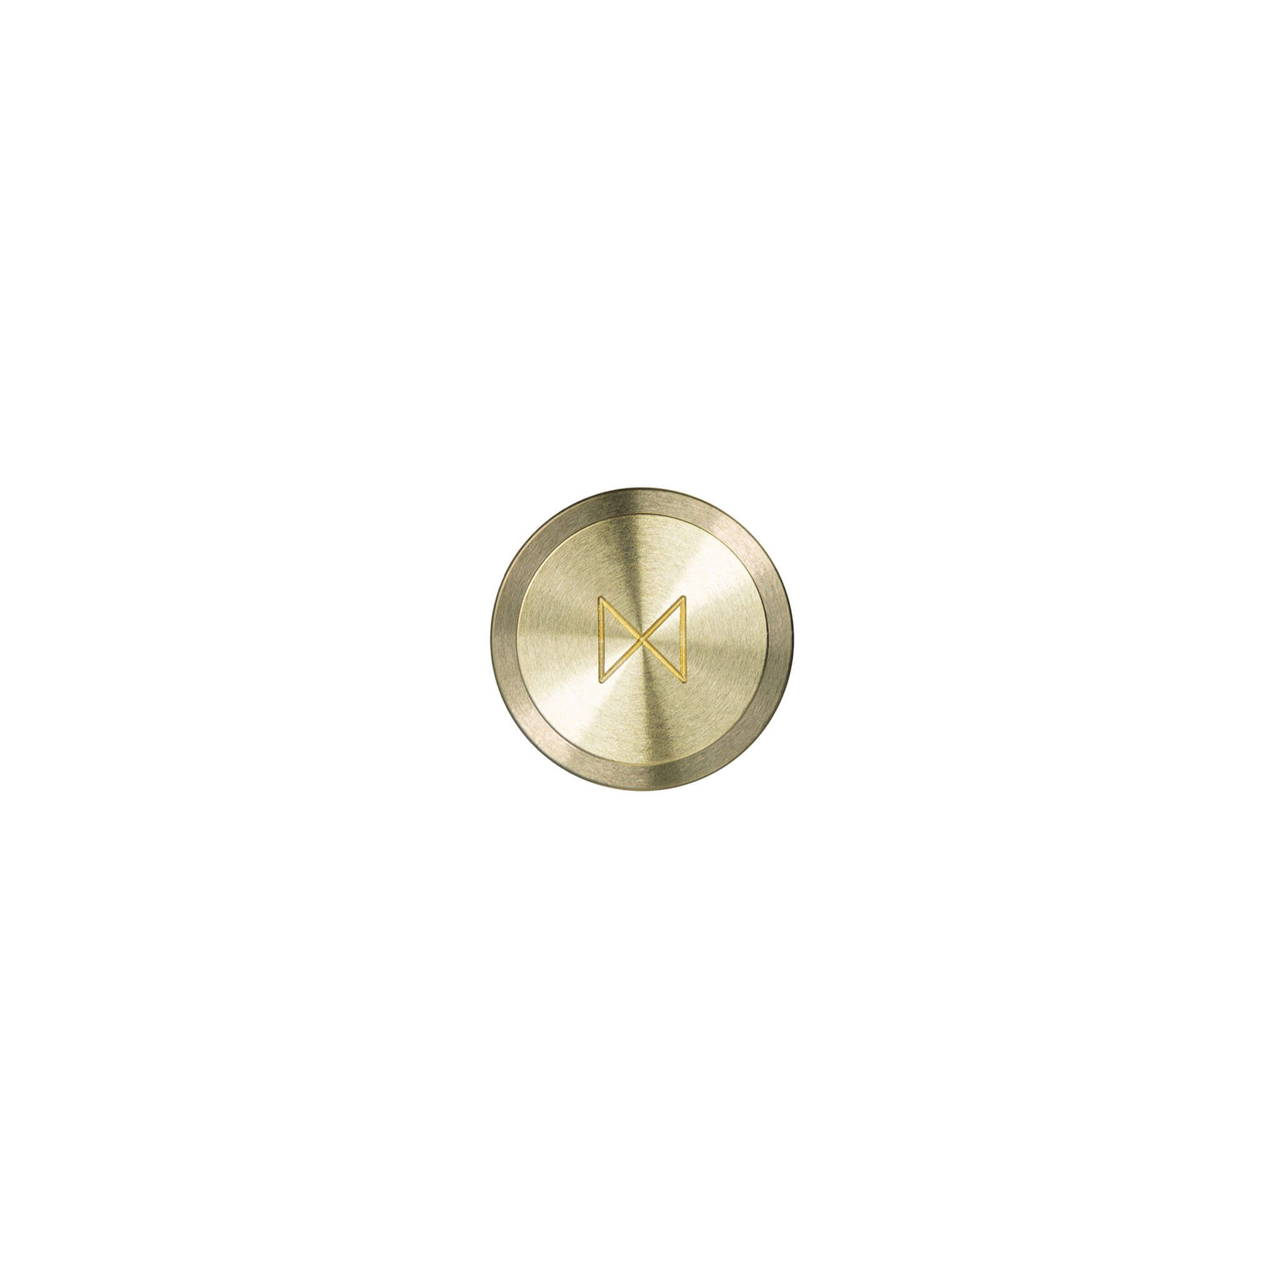 Brass Cufflink bottom face with monogram